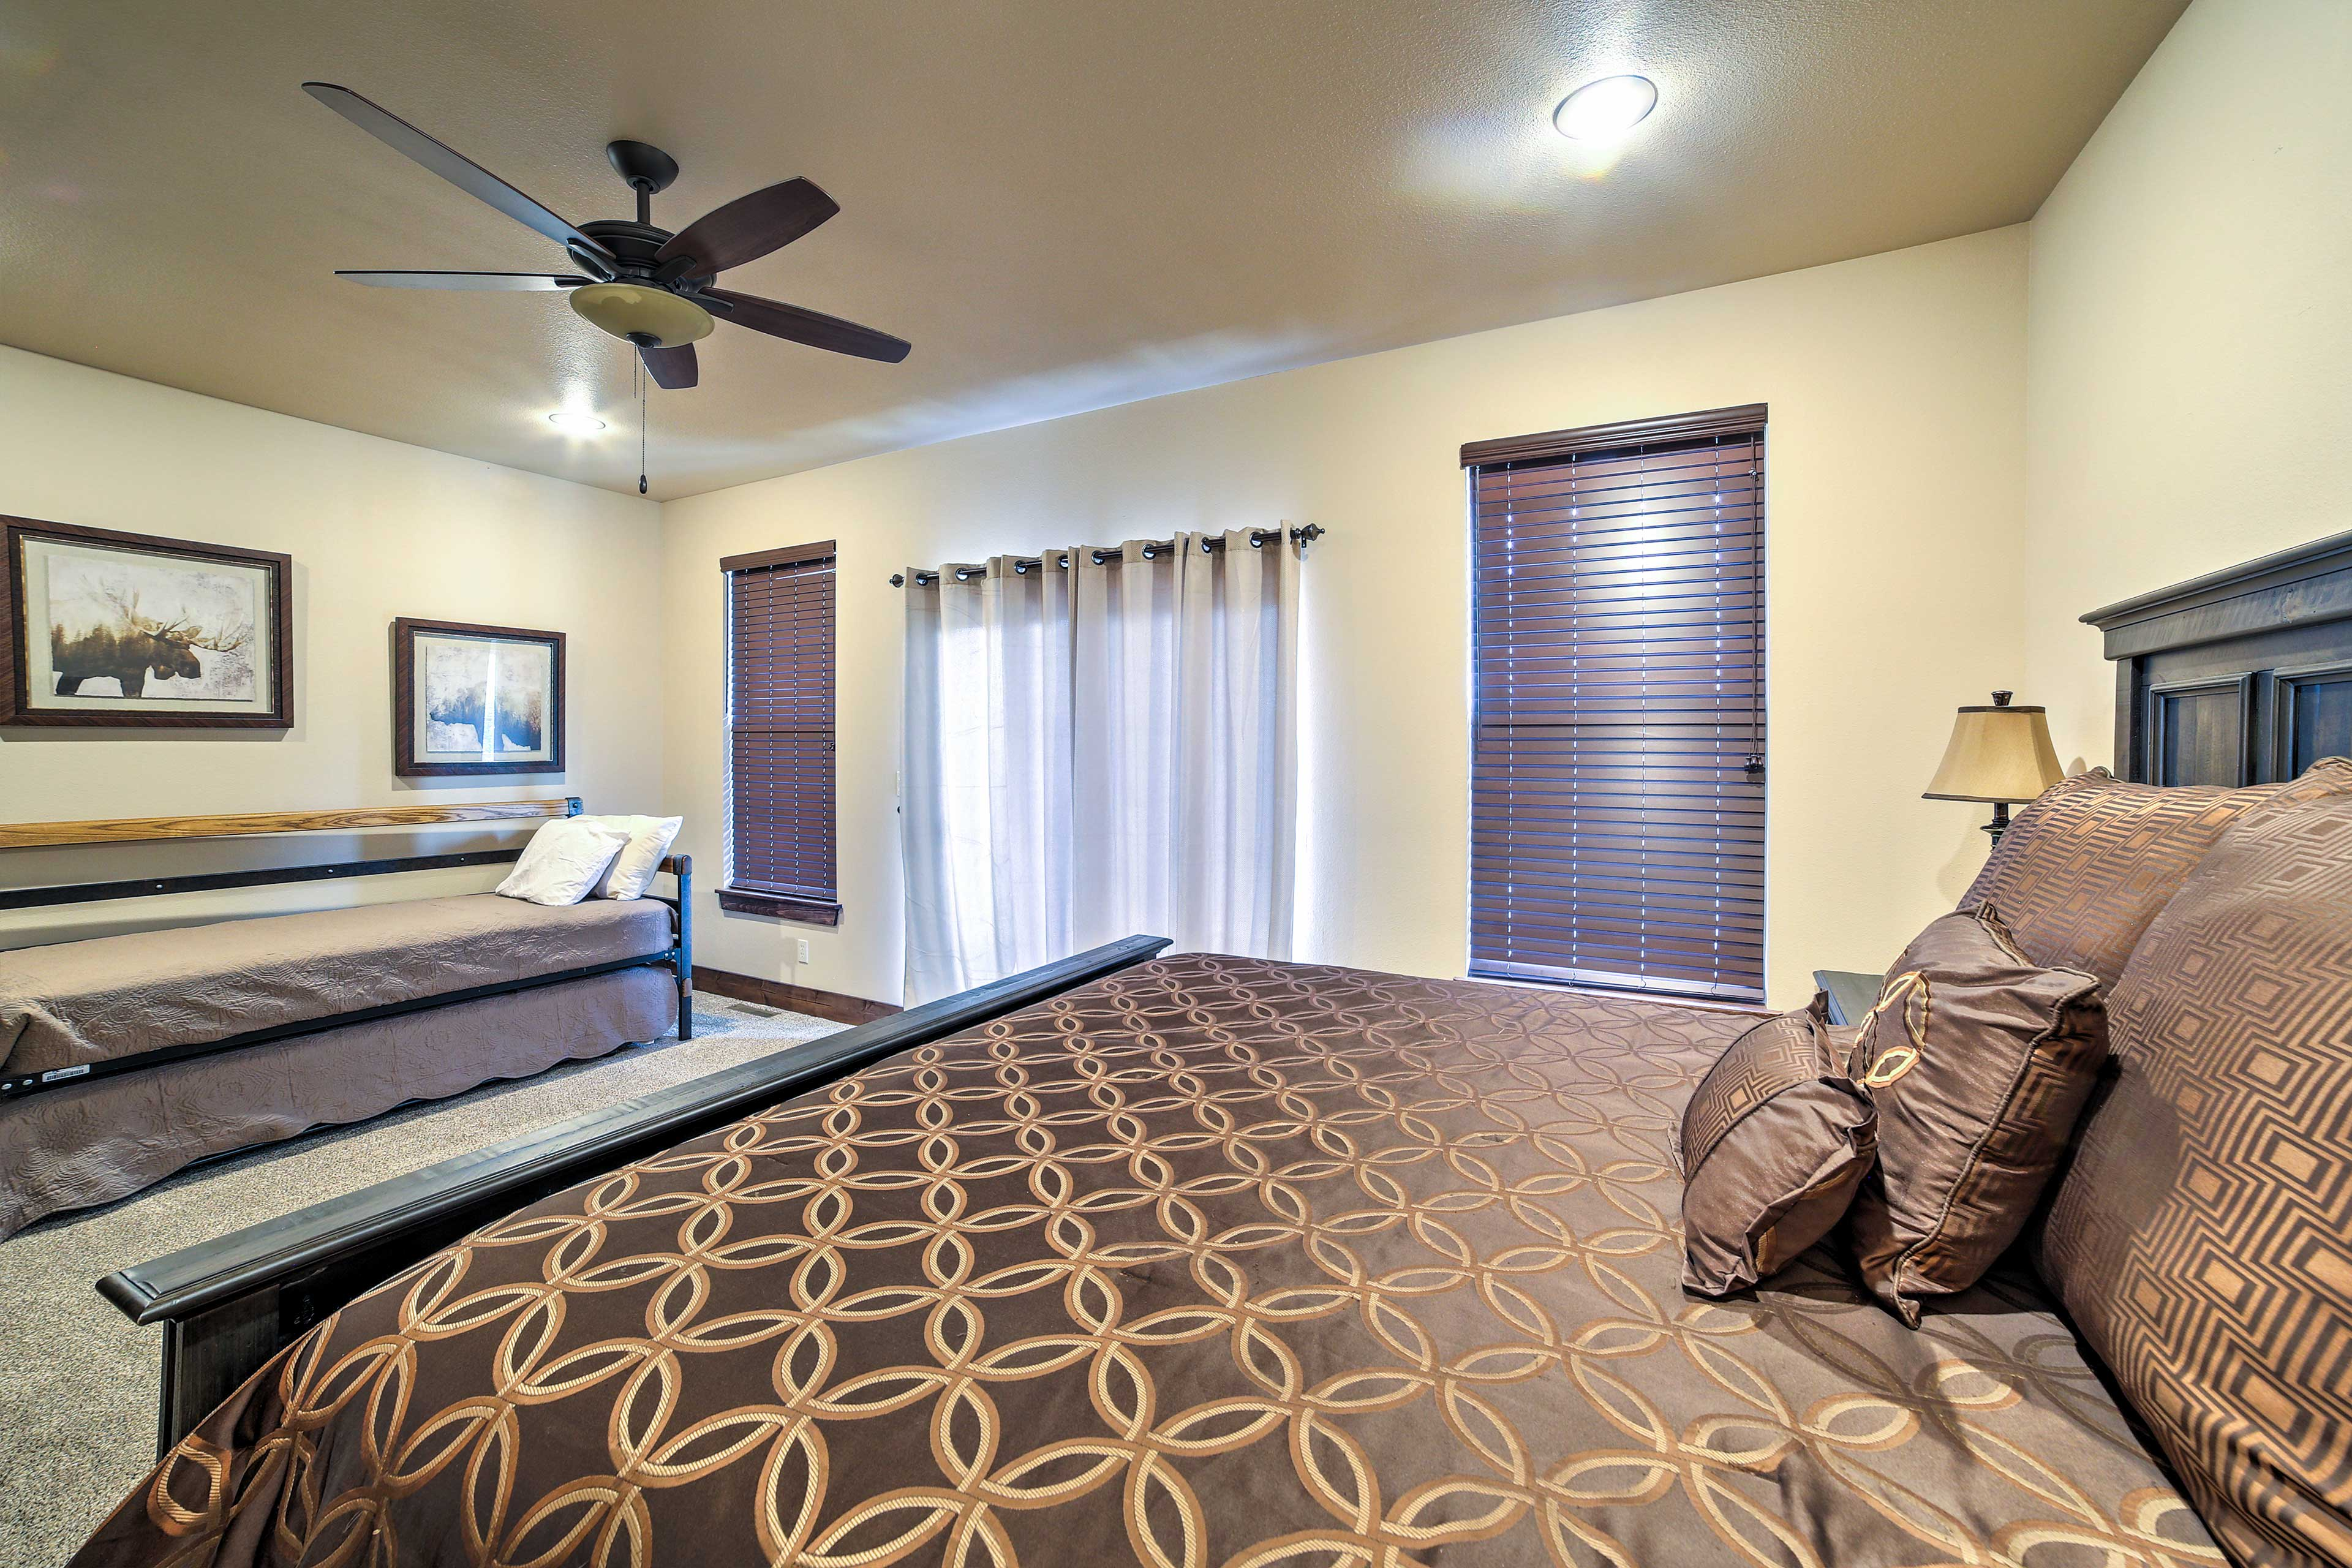 Let the breeze from the ceiling fan usher you to sleep.